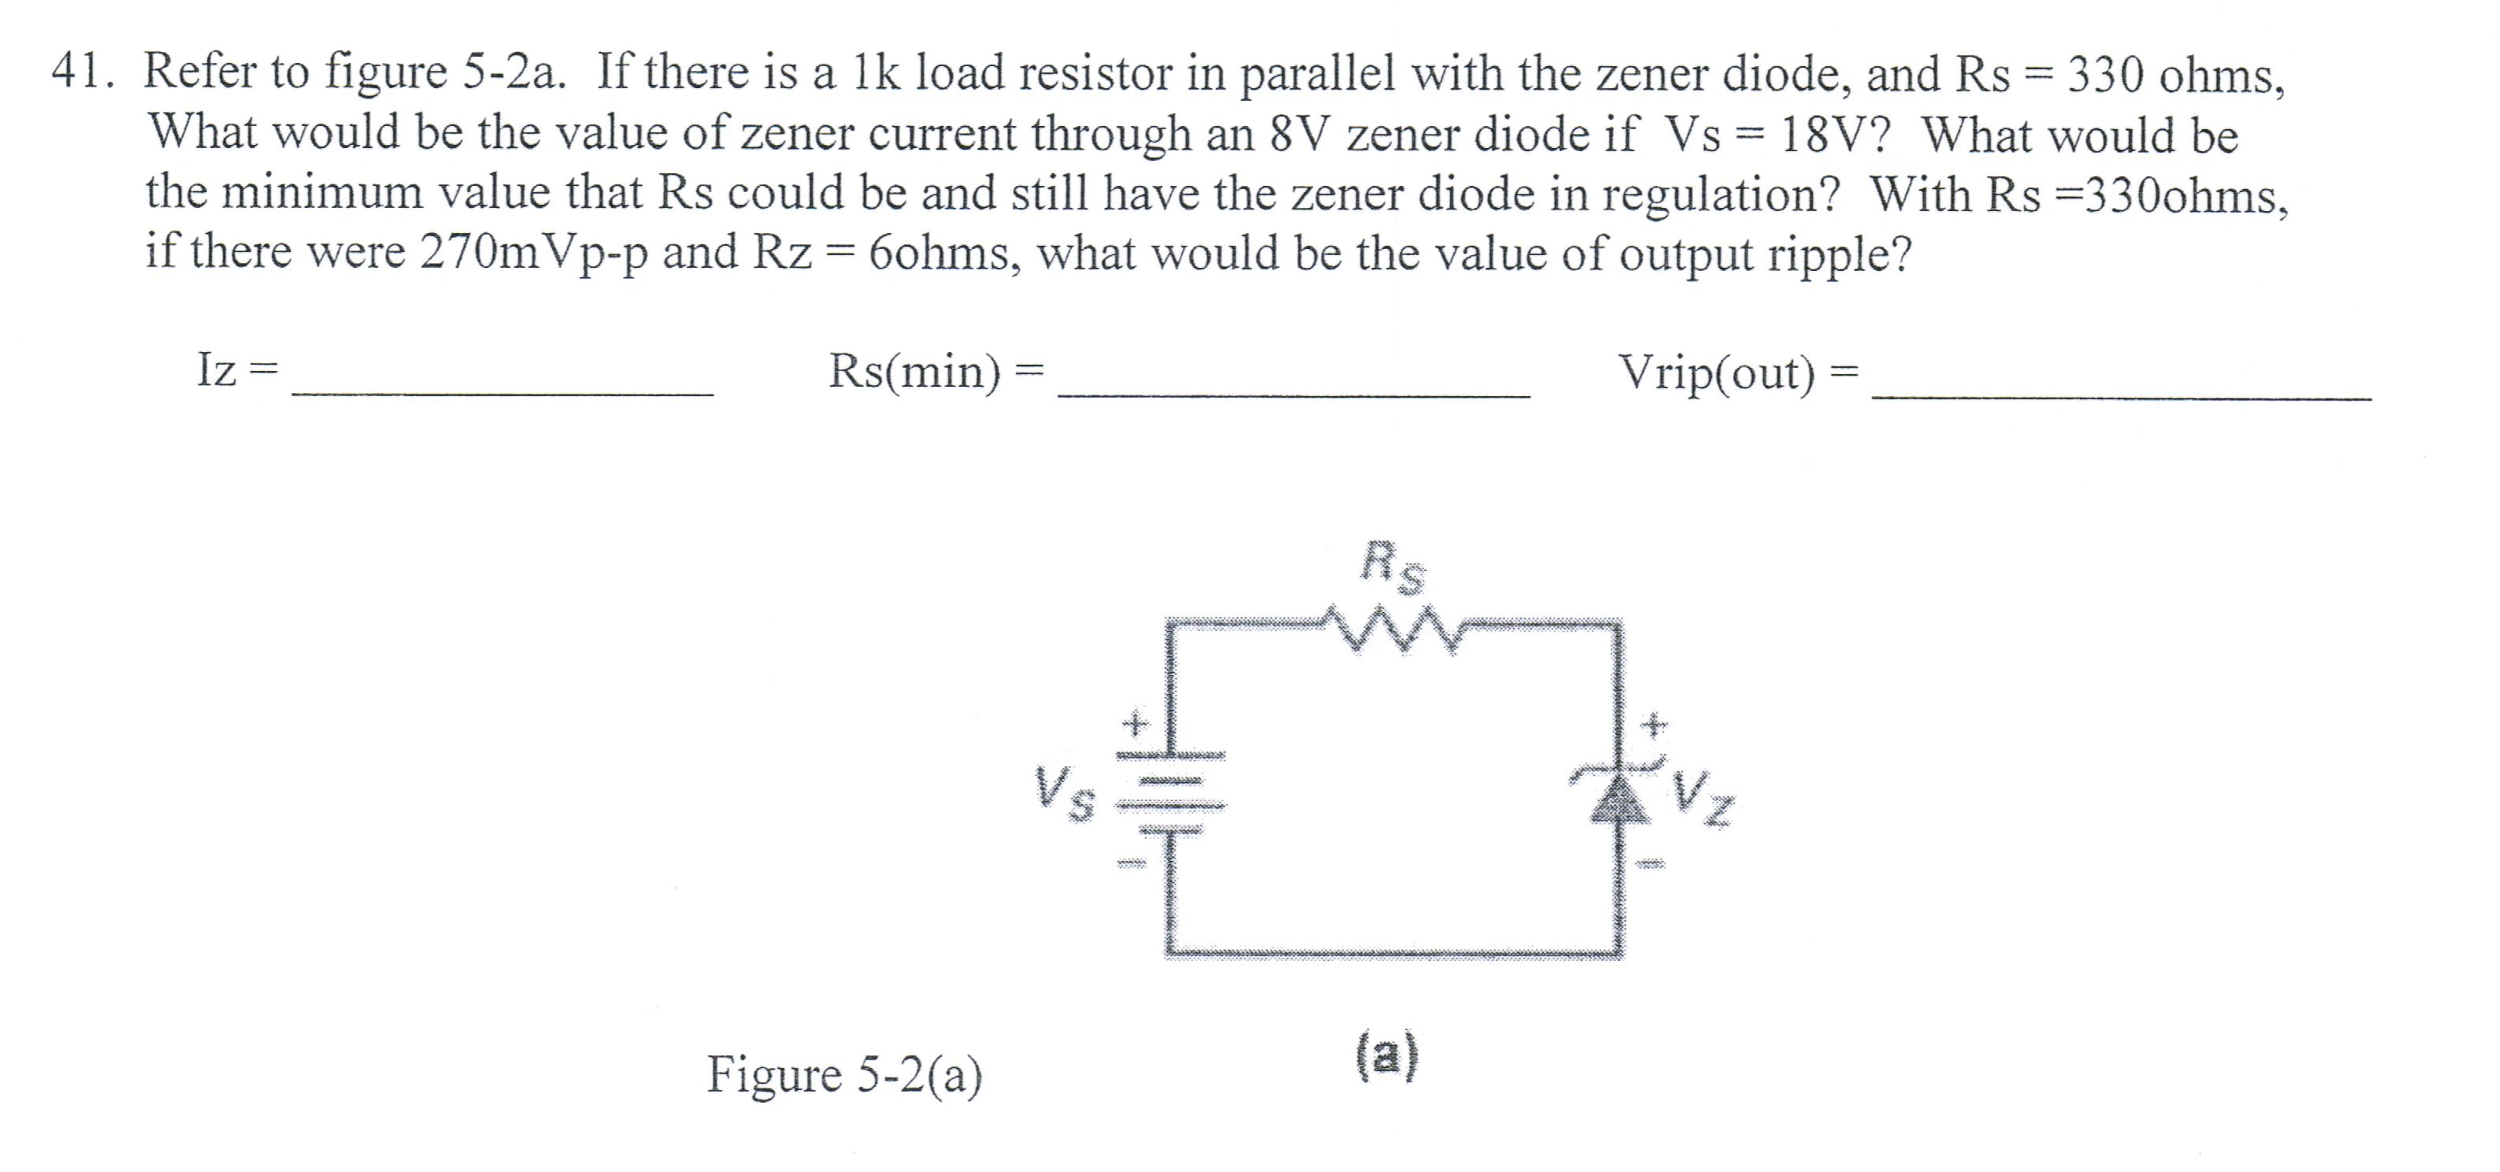 Refer to figure 5-2a. If there is a lk load resist